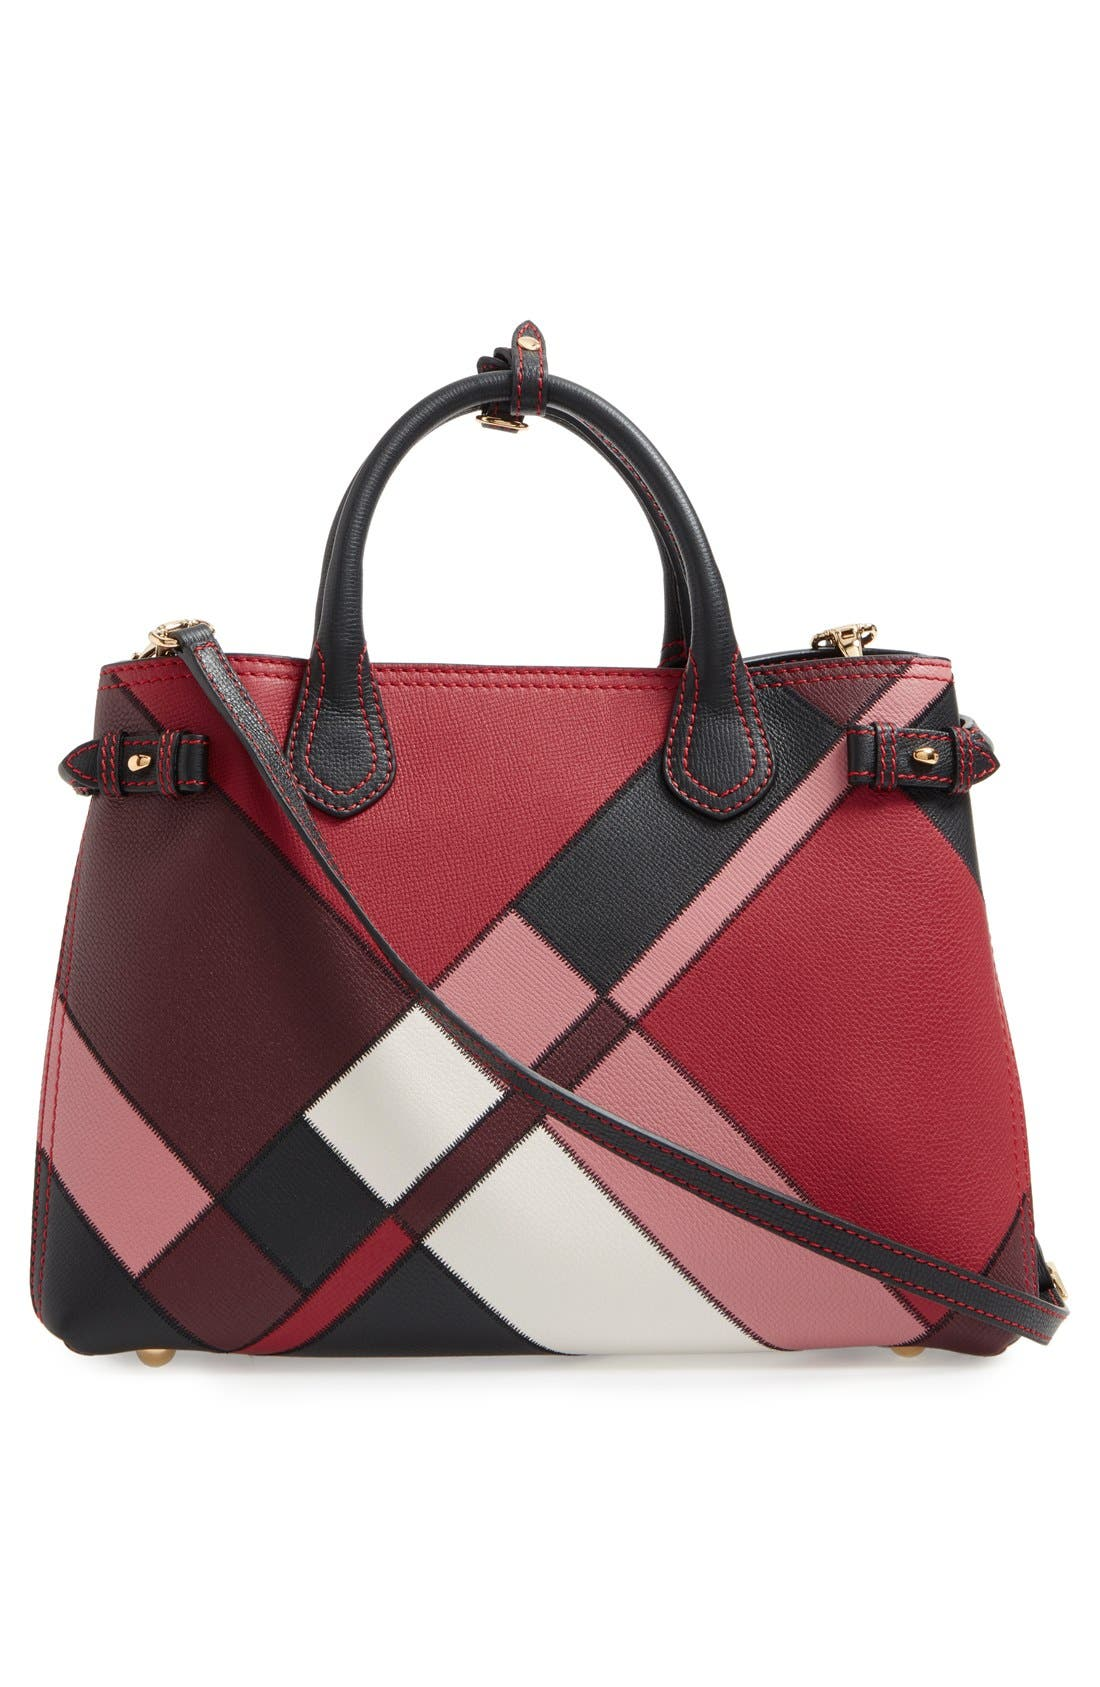 845be893146079 Burberry Women's Handbags, Purses & Wallets | Nordstrom